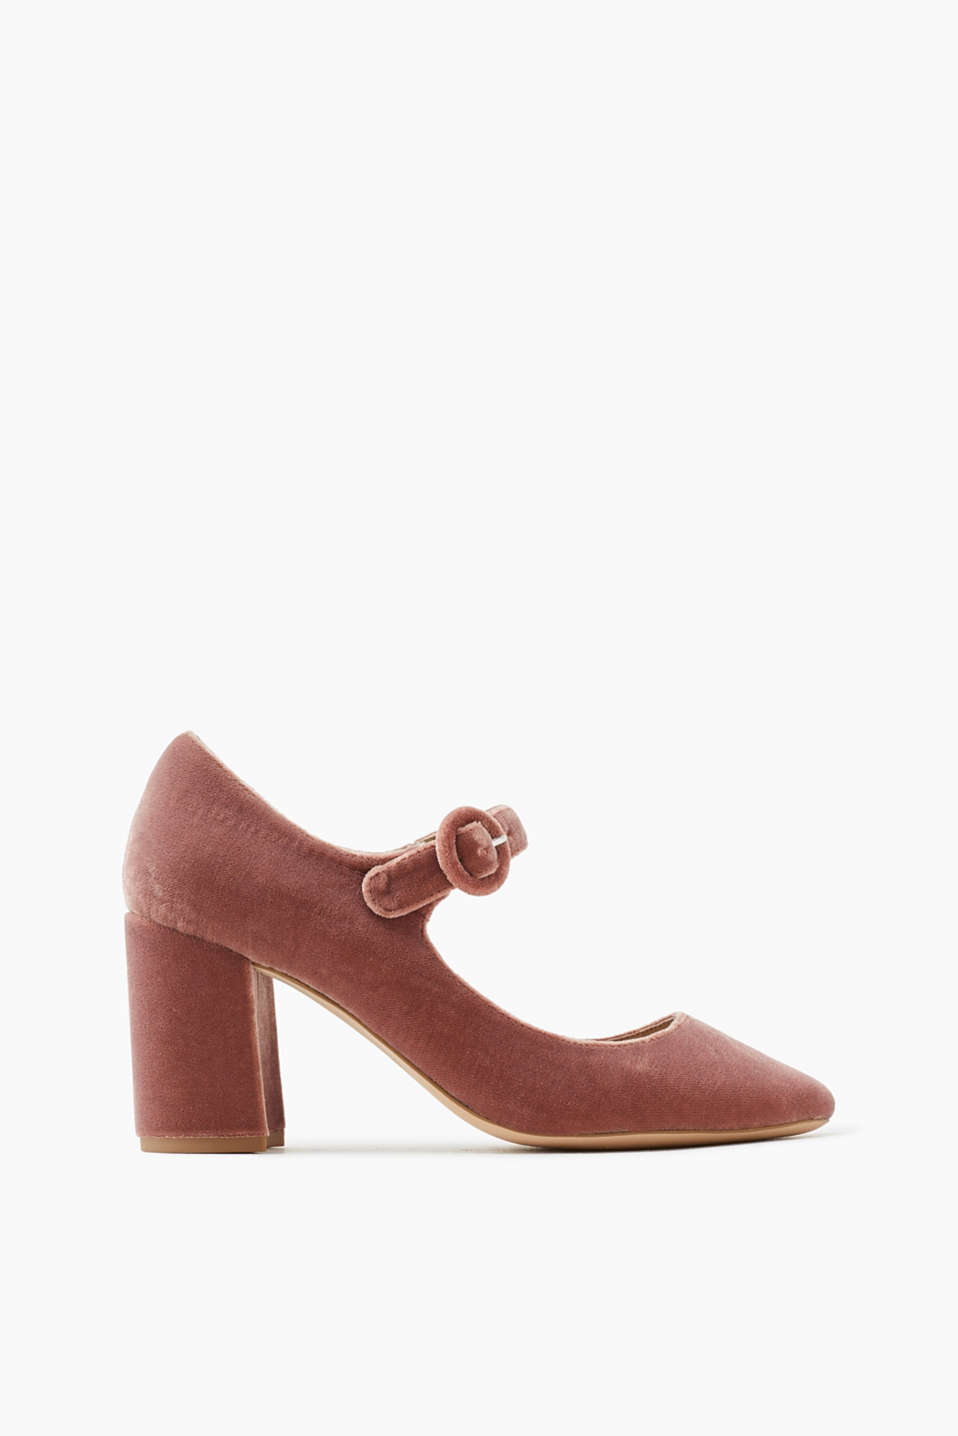 With a block heel: court shoes with a horizontal strap over the foot plus a block heel